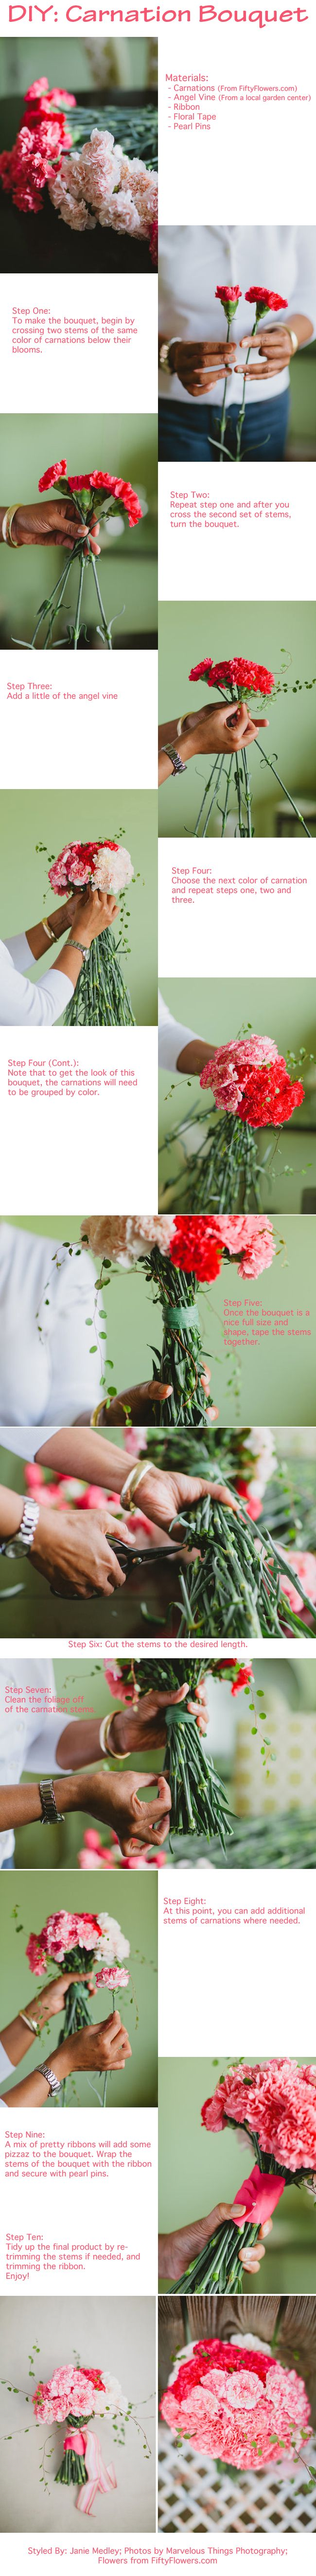 Holiday arrangements wholesale bulk flowers fiftyflowers - Diy Carnation Bouquet Learn How To Create Your Own Gorgeous Wedding Bouquet Using Wholesale Carnations